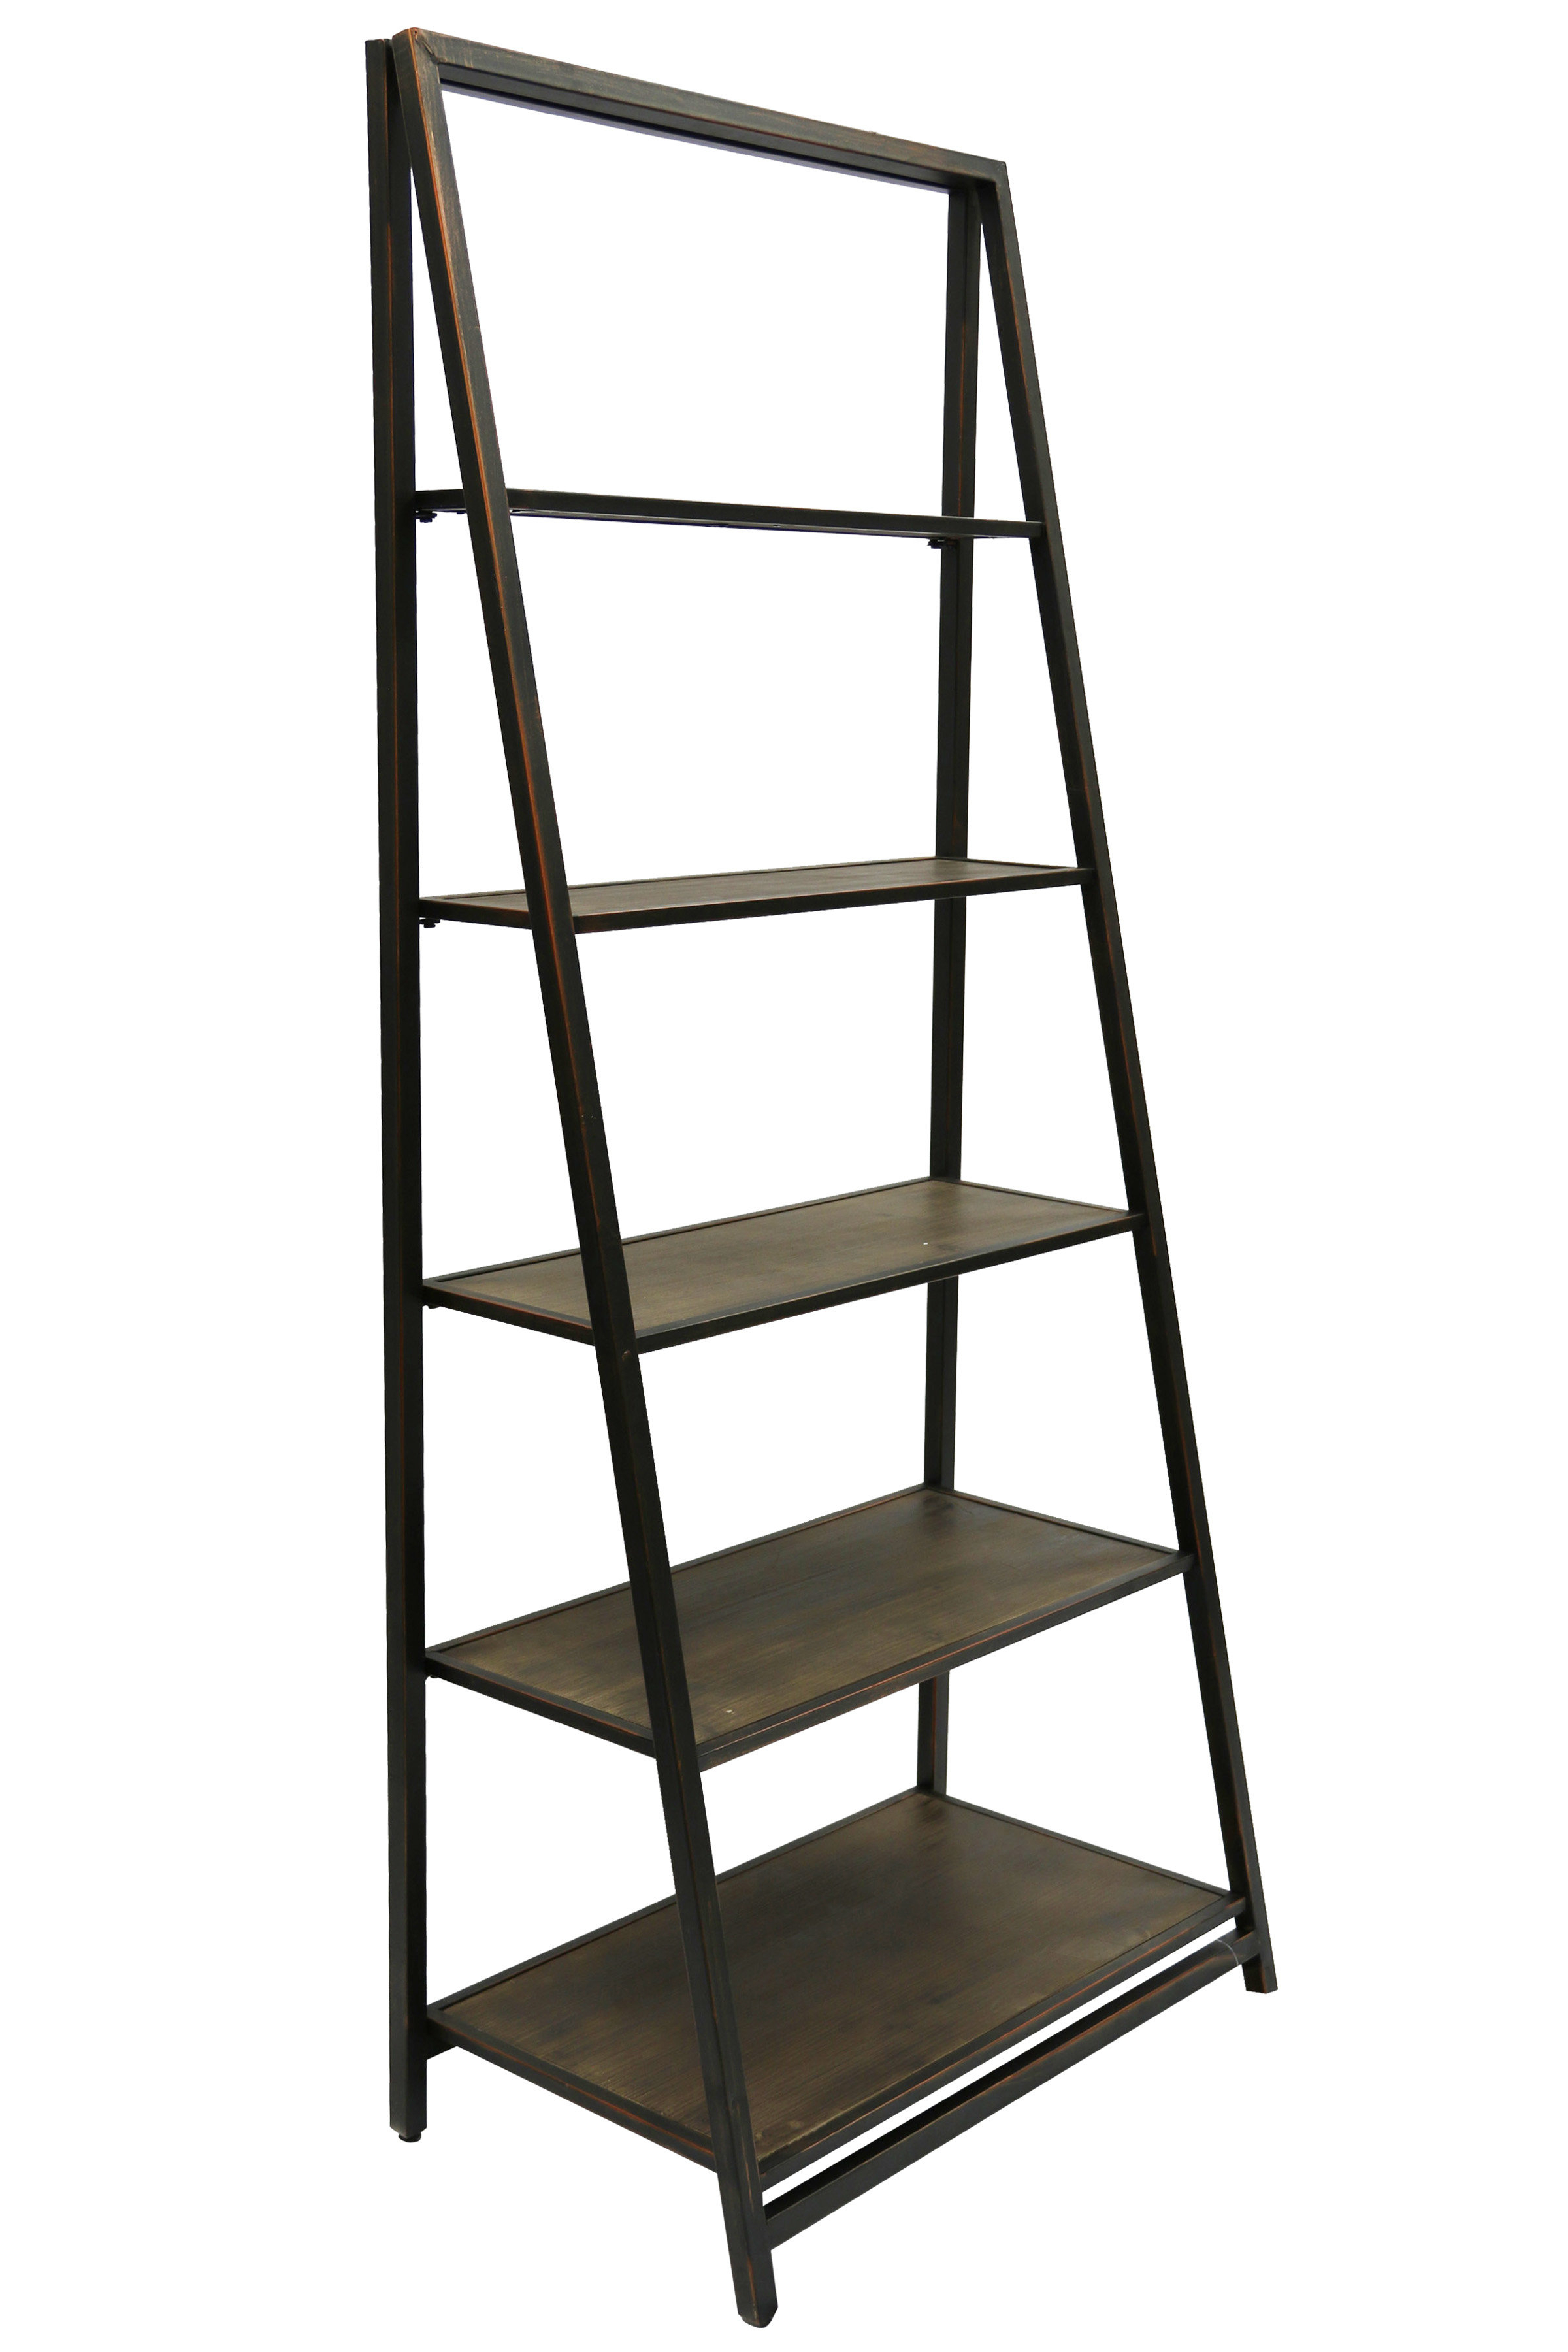 Fashionable Averett Ladder Bookcases Inside Walcott Ladder Bookcase (View 6 of 20)